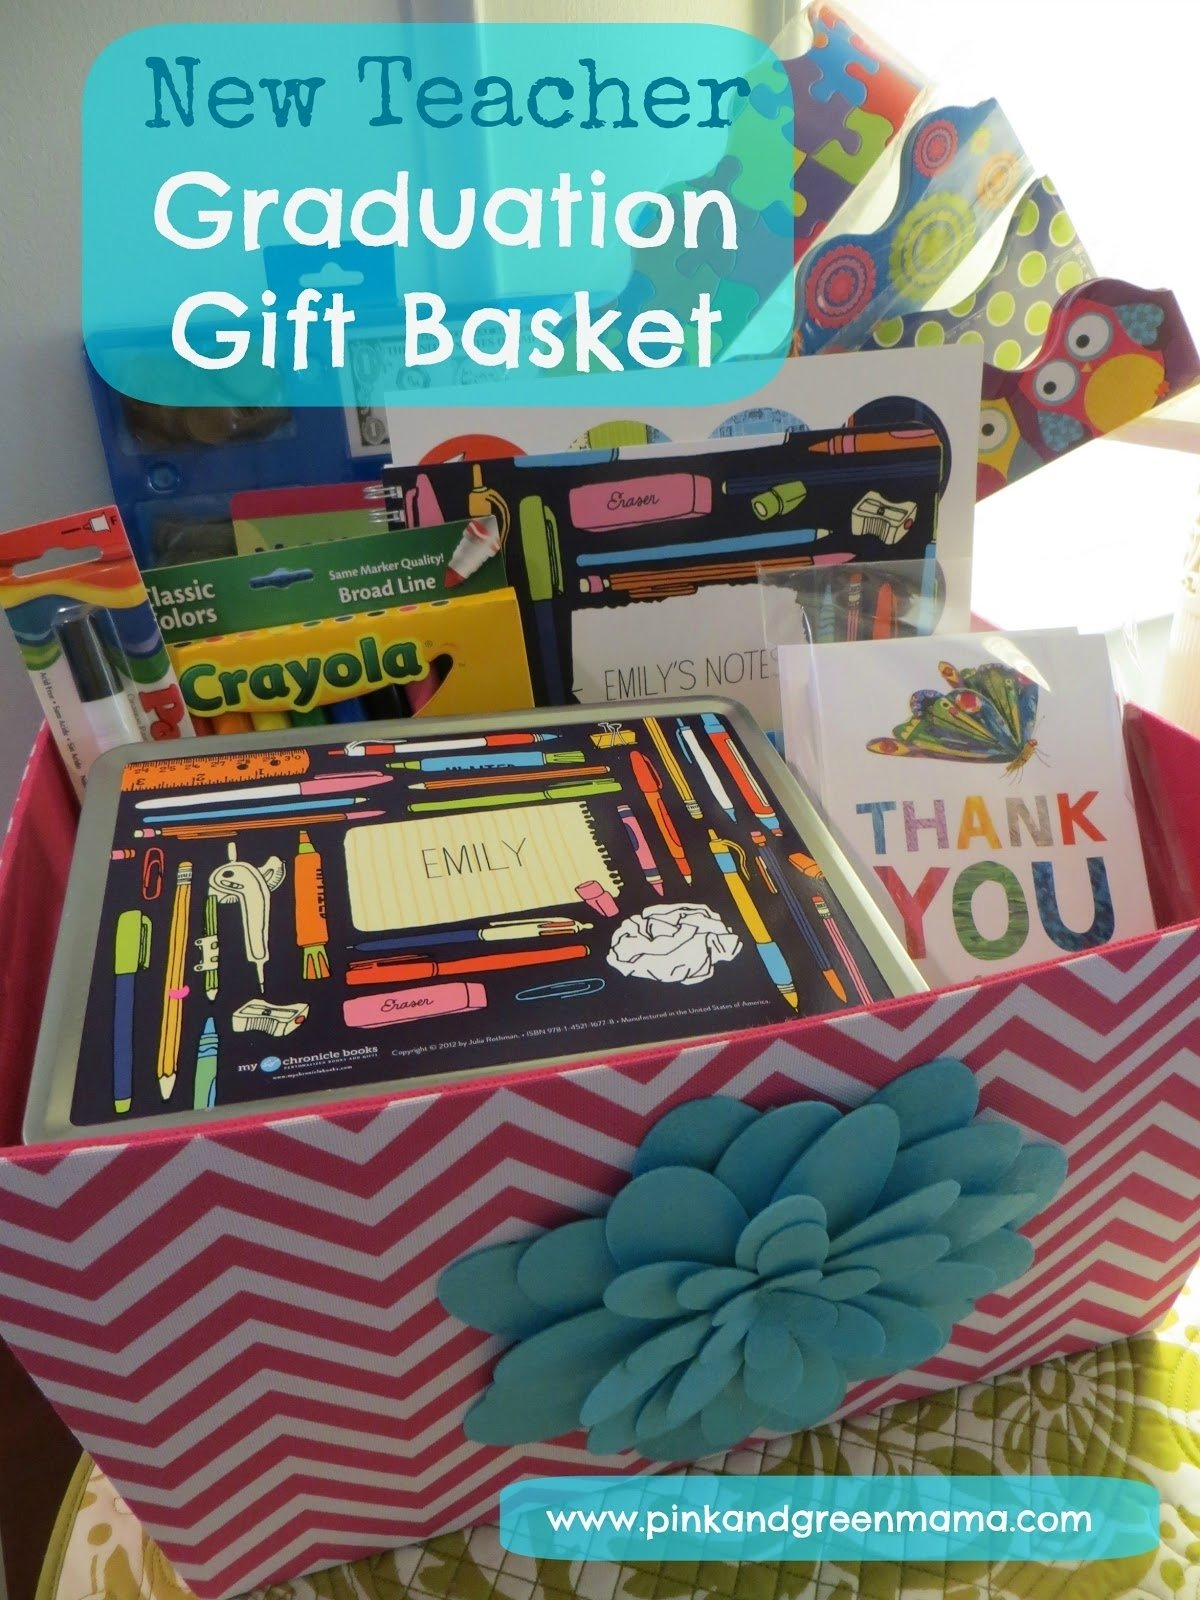 10 Trendy Gift Ideas For New Teachers pink and green mama graduation gift basket for a new teacher with 2020